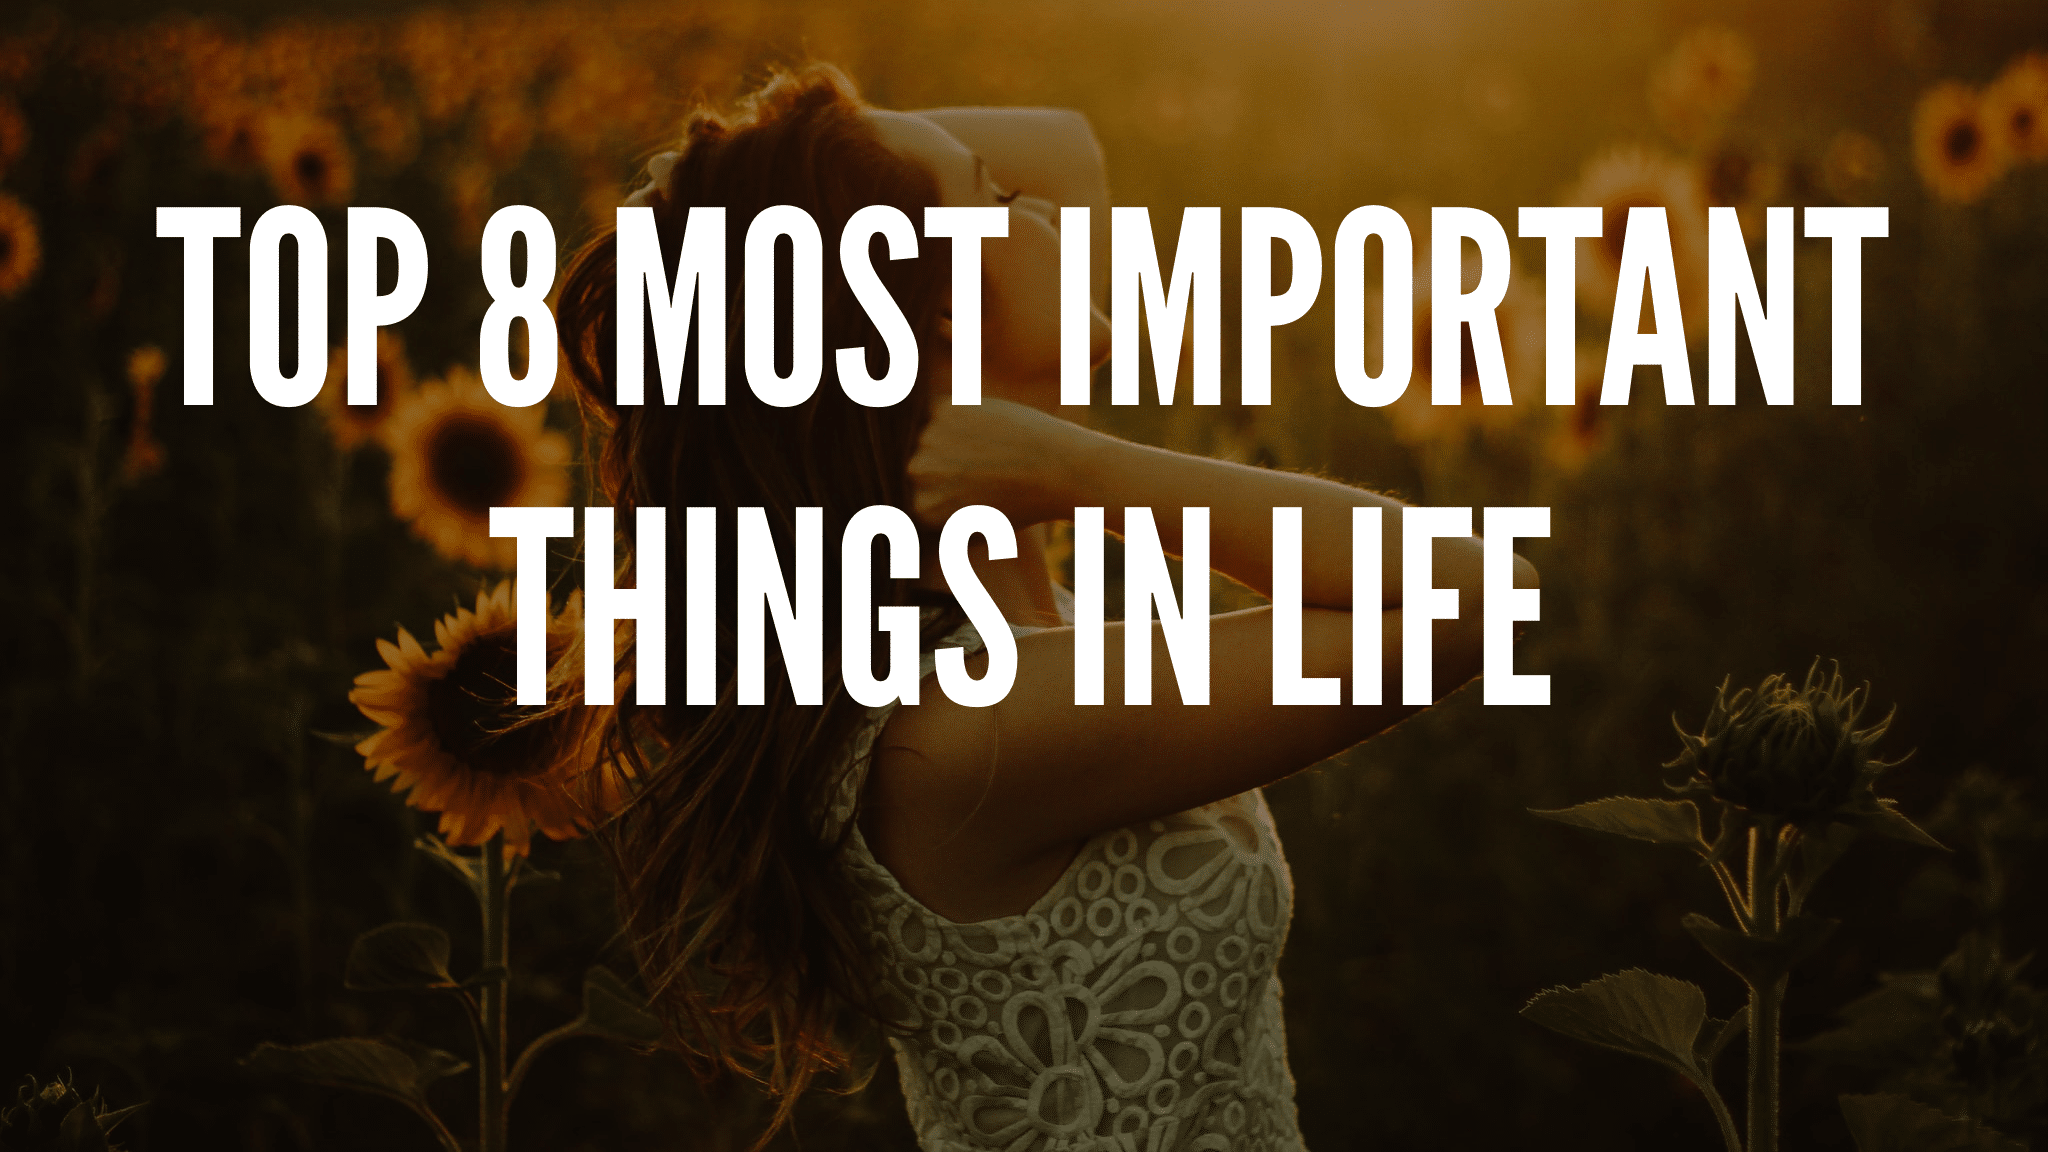 The Top 8 Most Important Things in Life